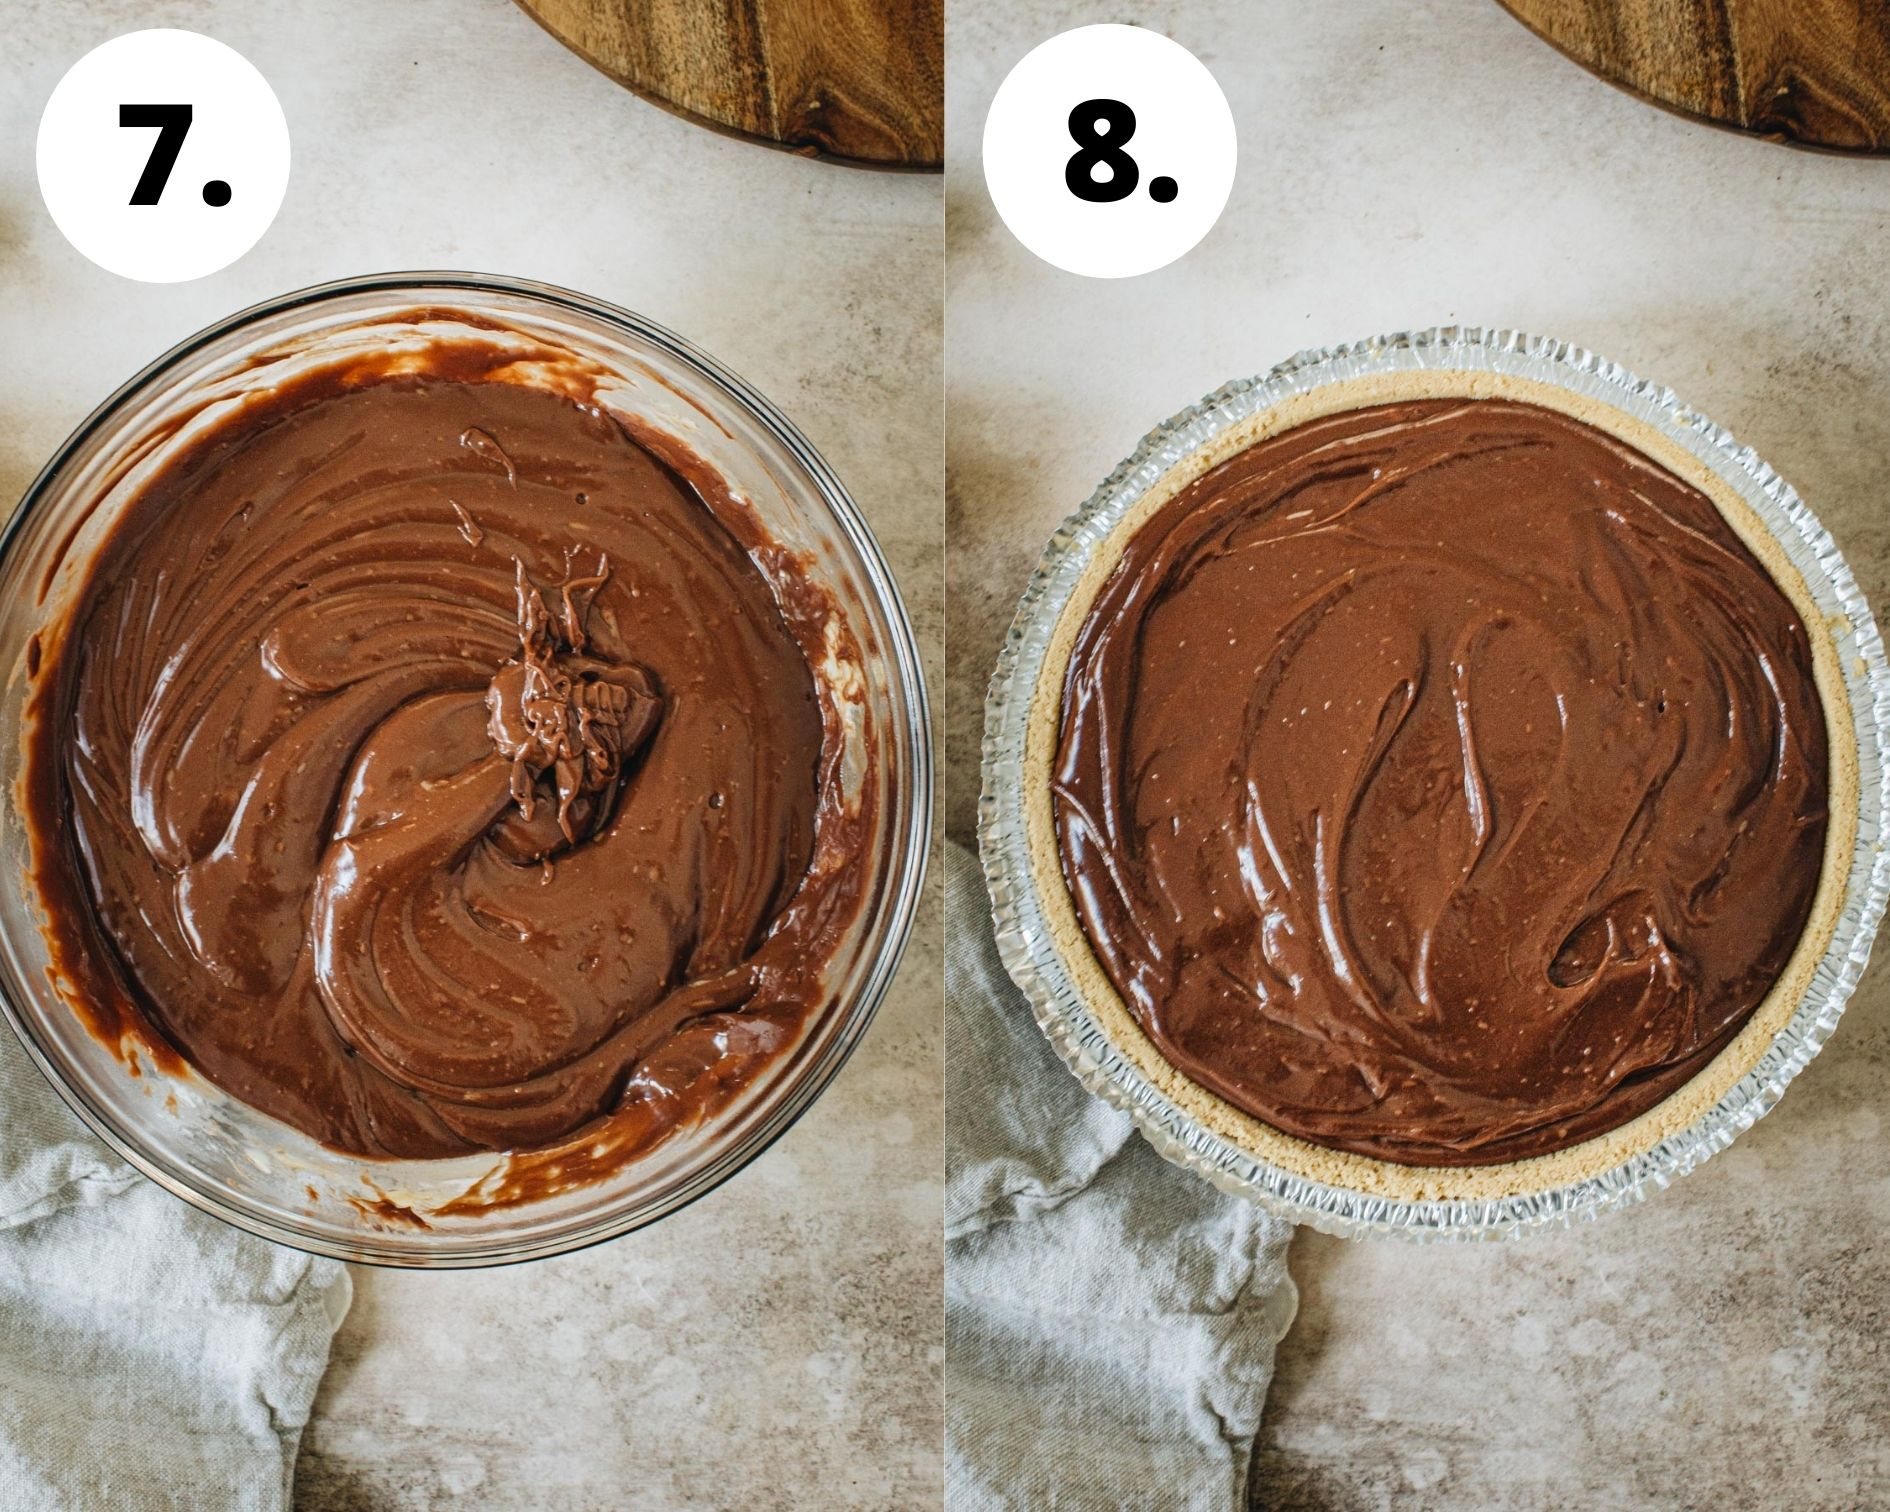 S'mores pudding pie process steps 7 and 8.